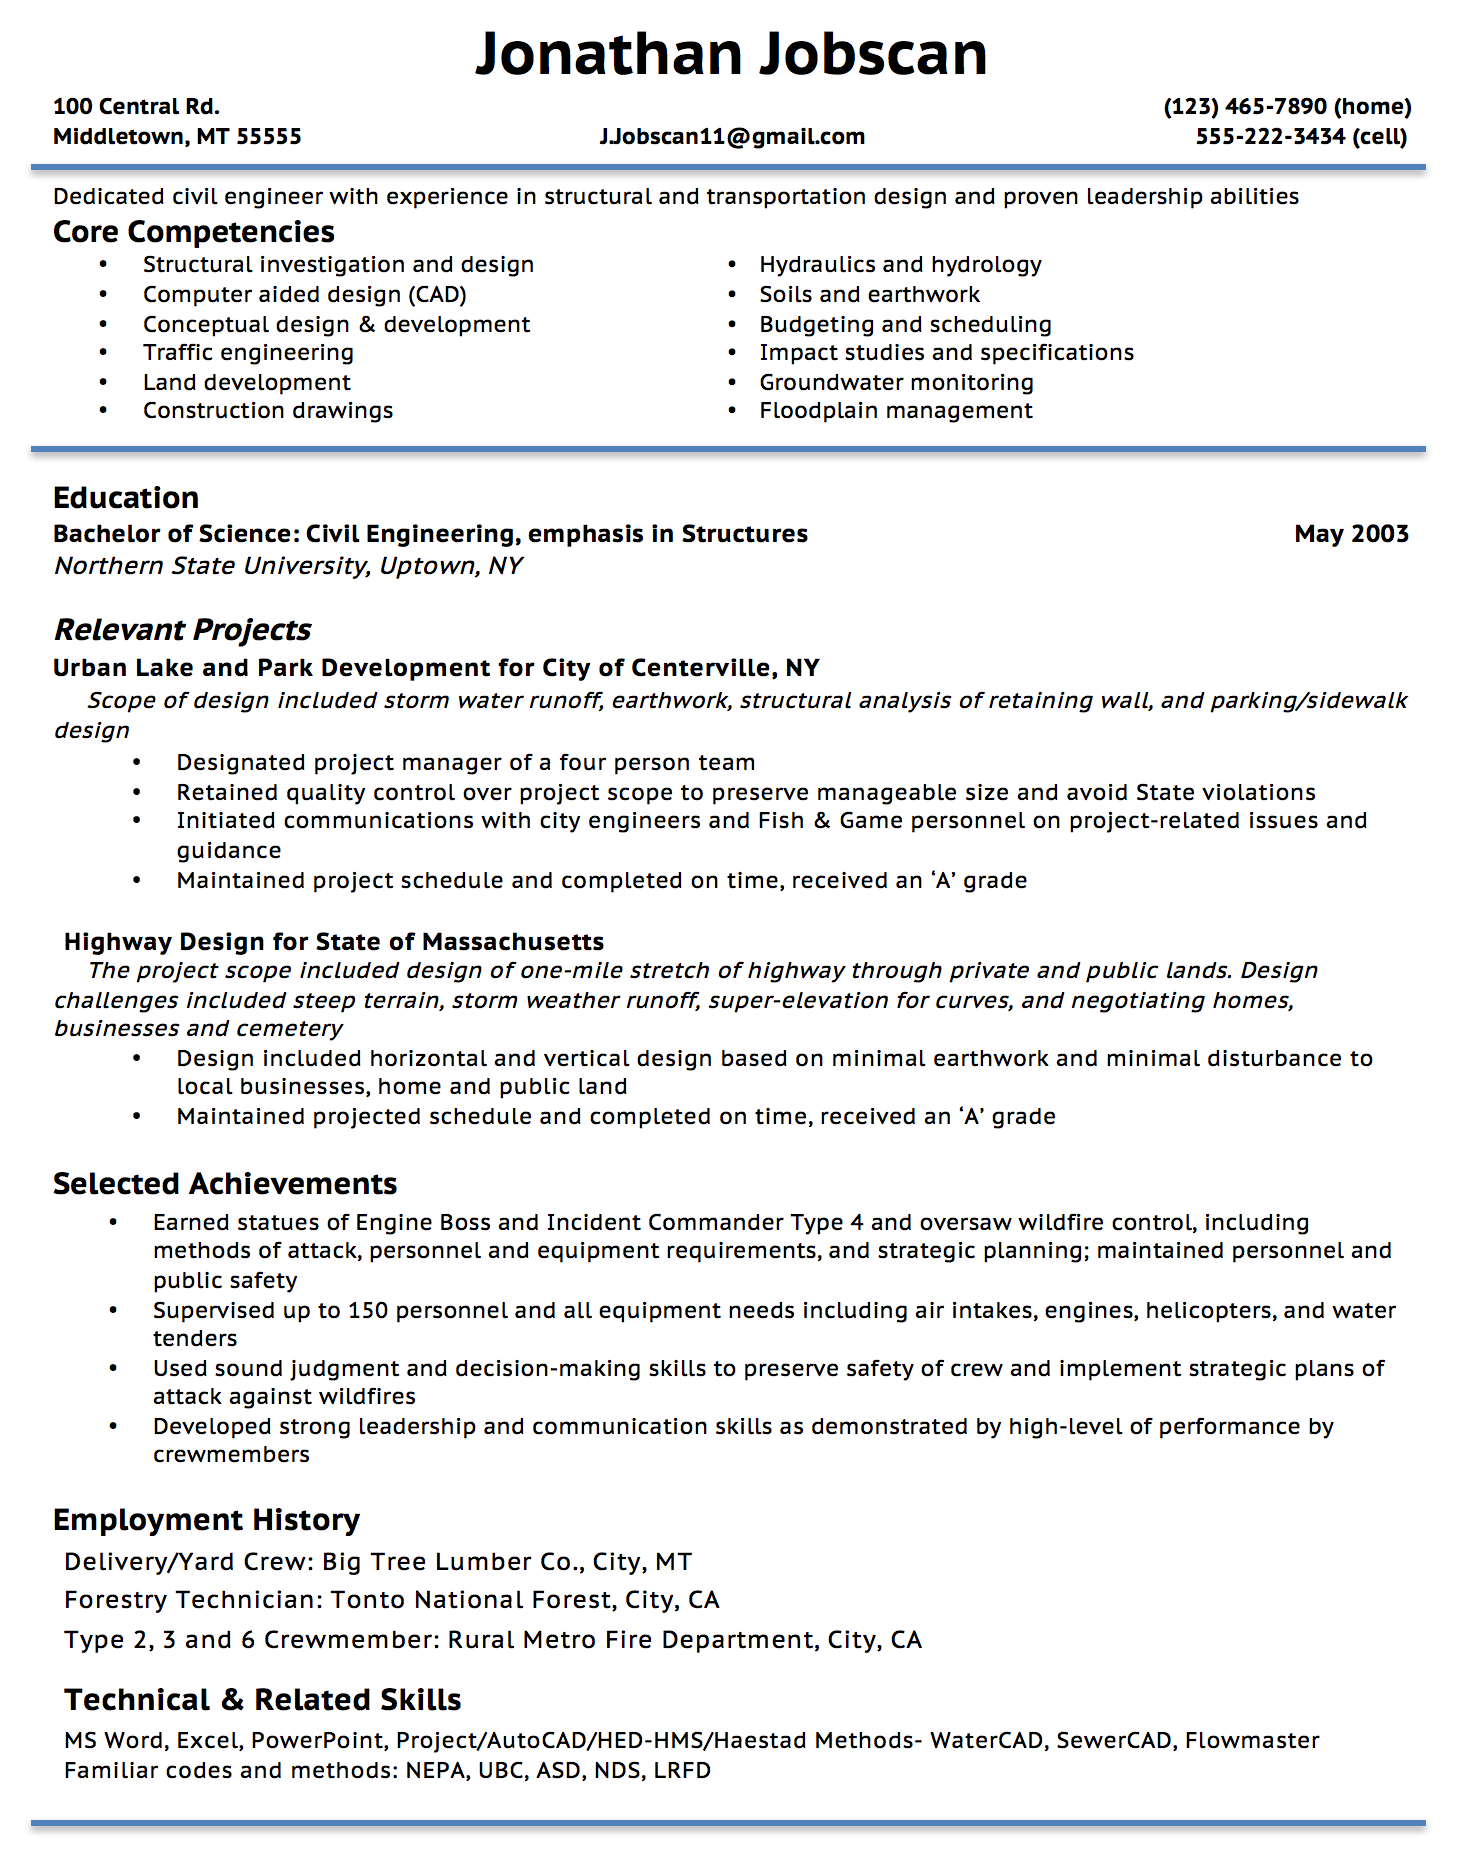 Opposenewapstandardsus  Winning Resume Writing Guide  Jobscan With Outstanding Example Of A Functional Resume Format With Delectable Busboy Resume Also Network Engineer Resume Sample In Addition Resume Helper Free And Resum Template As Well As Resume Business Additionally Pages Resume Templates Mac From Jobscanco With Opposenewapstandardsus  Outstanding Resume Writing Guide  Jobscan With Delectable Example Of A Functional Resume Format And Winning Busboy Resume Also Network Engineer Resume Sample In Addition Resume Helper Free From Jobscanco